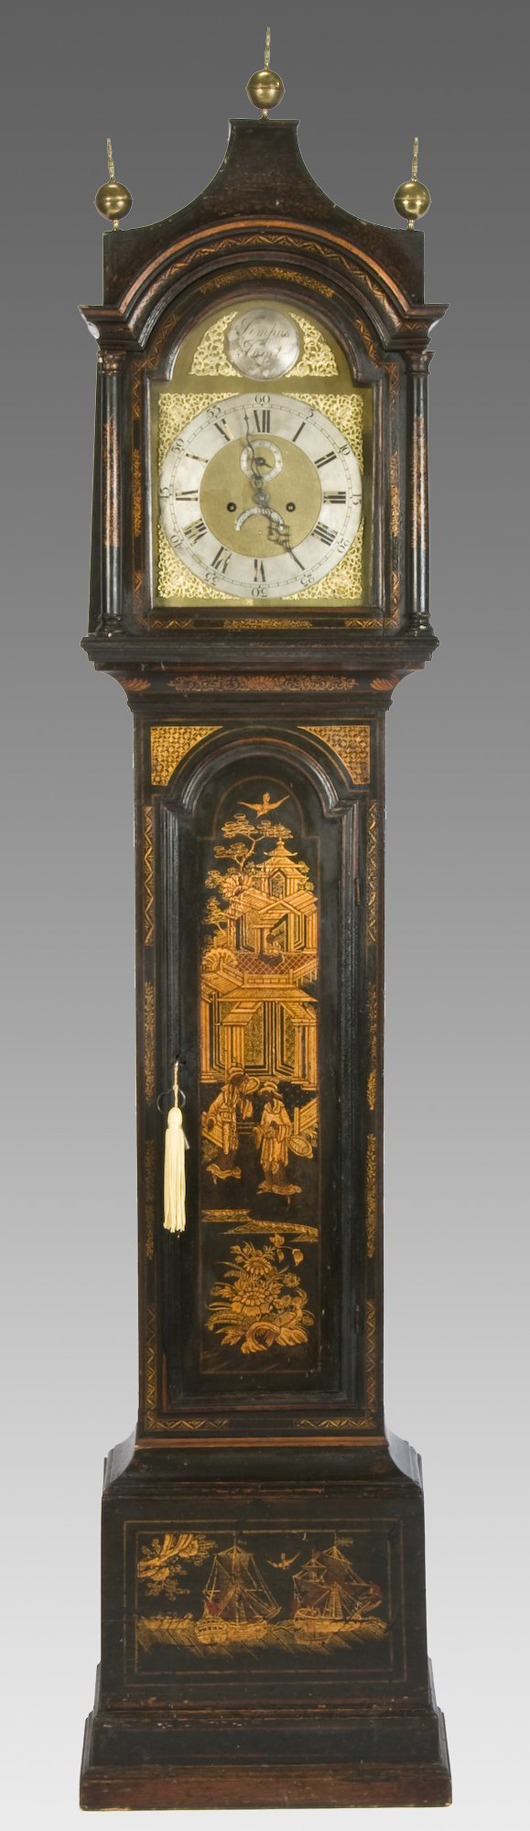 Dallas Auction Gallery Sold This 18th Century English Chinoiserie Long Case  Clock For $5,000 In